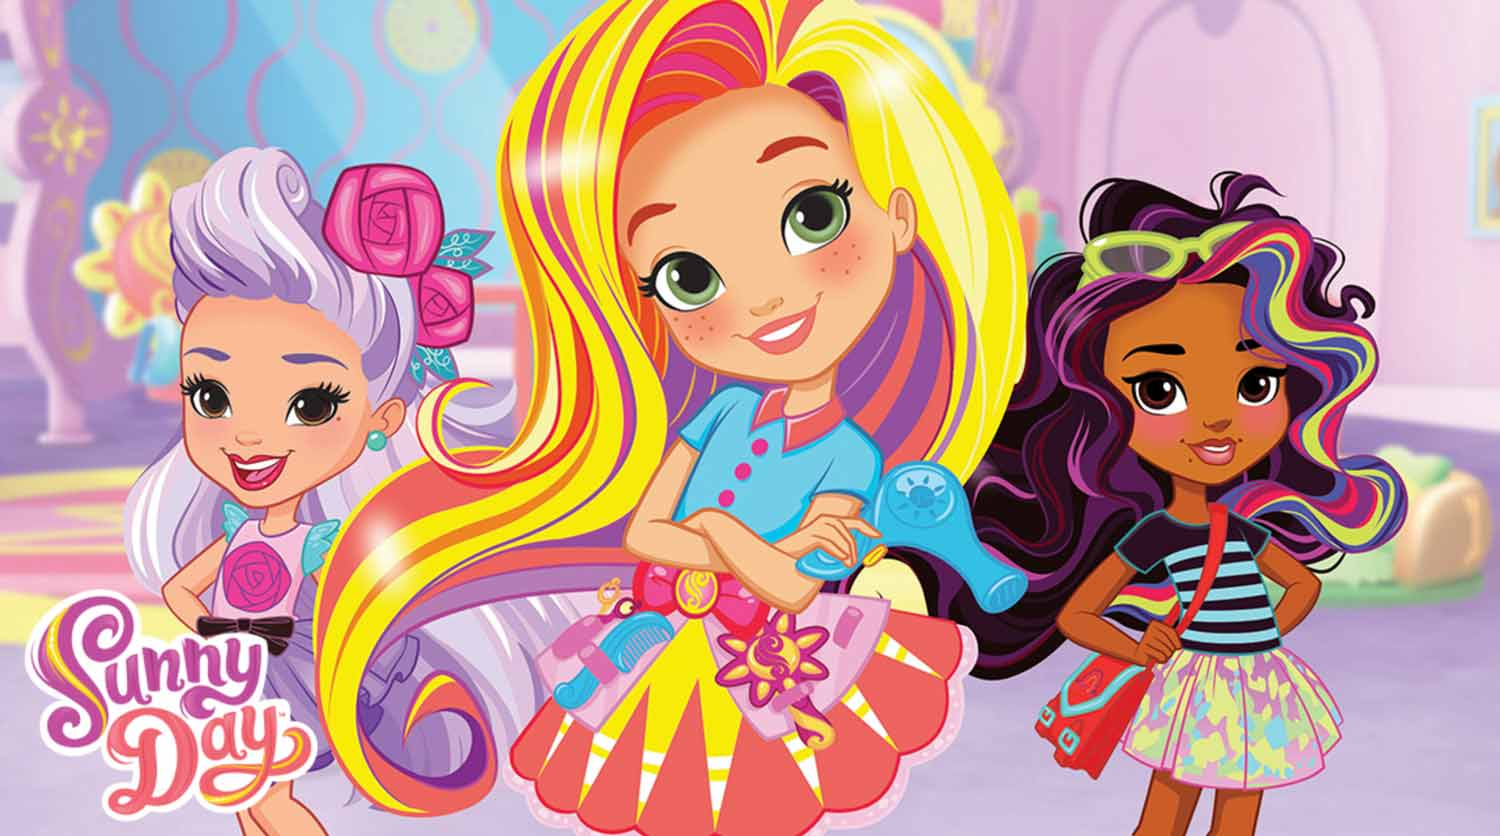 Sunny Day, Sunny, Rox and Blair - produced by Silvergate Media for Nickelodeon